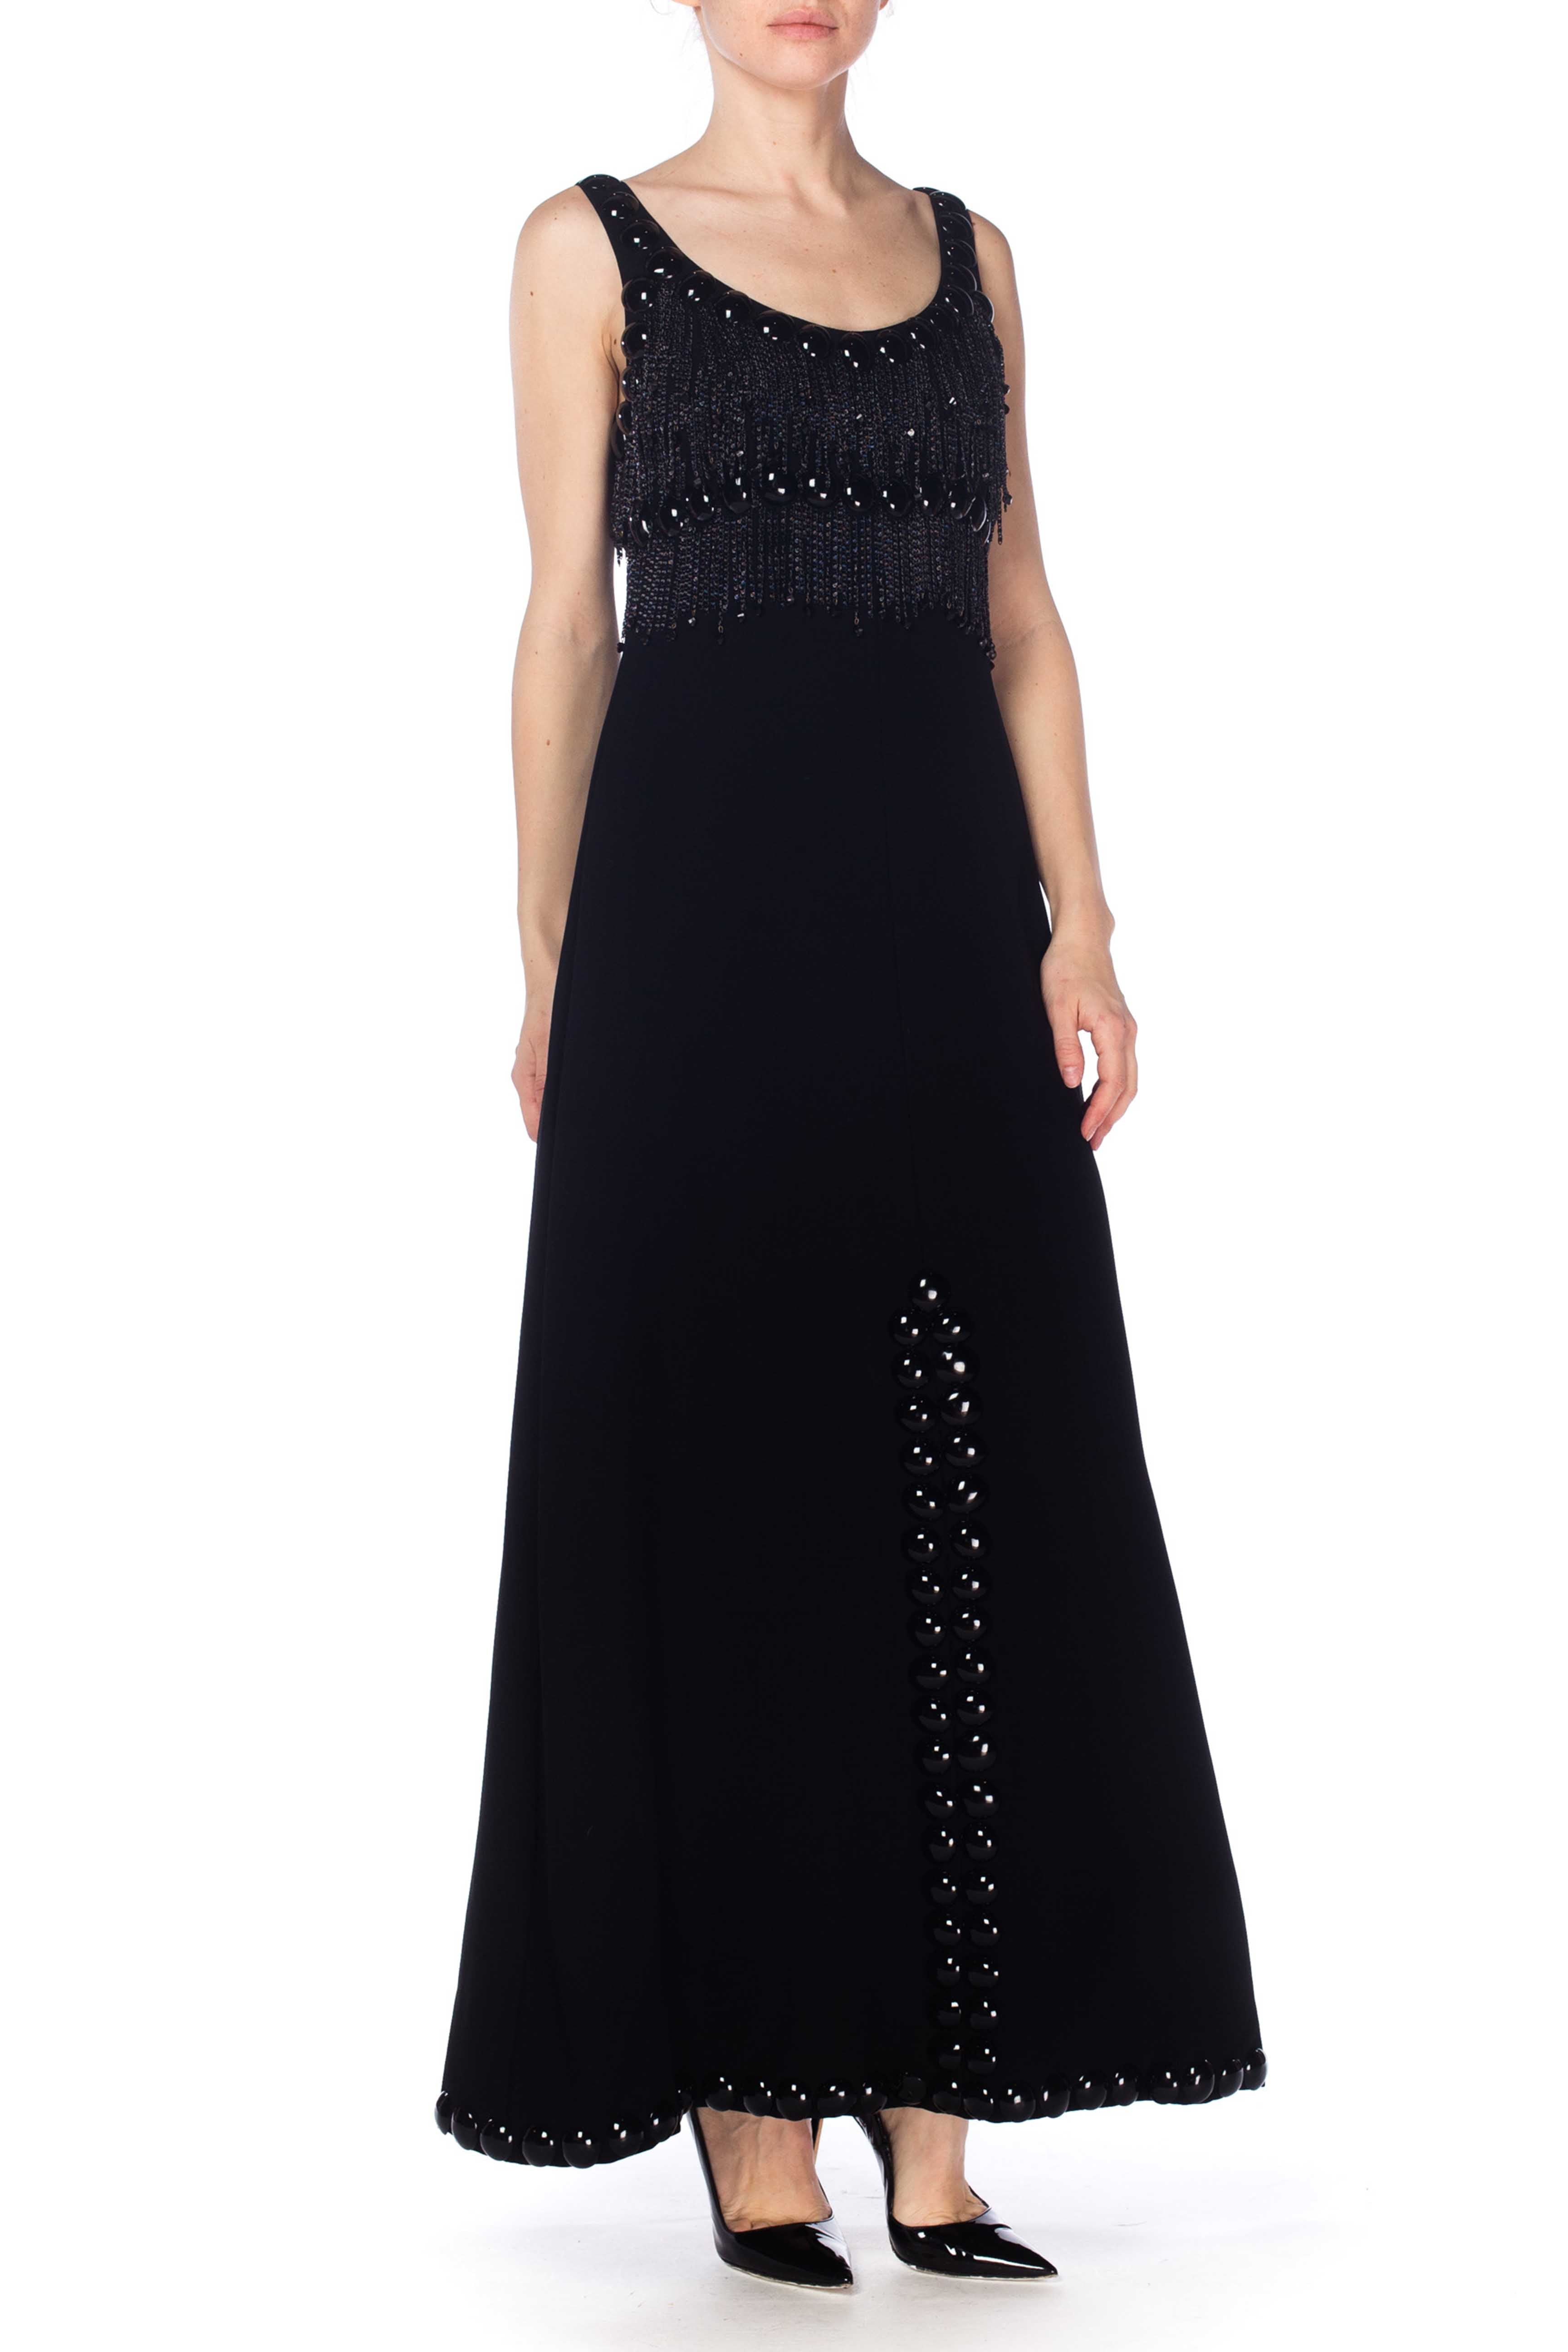 1960S Loris Azzaro Black Rayon Crepe Empire Waist Gown With Futuristic Domed Pailettes & Chain Fringe